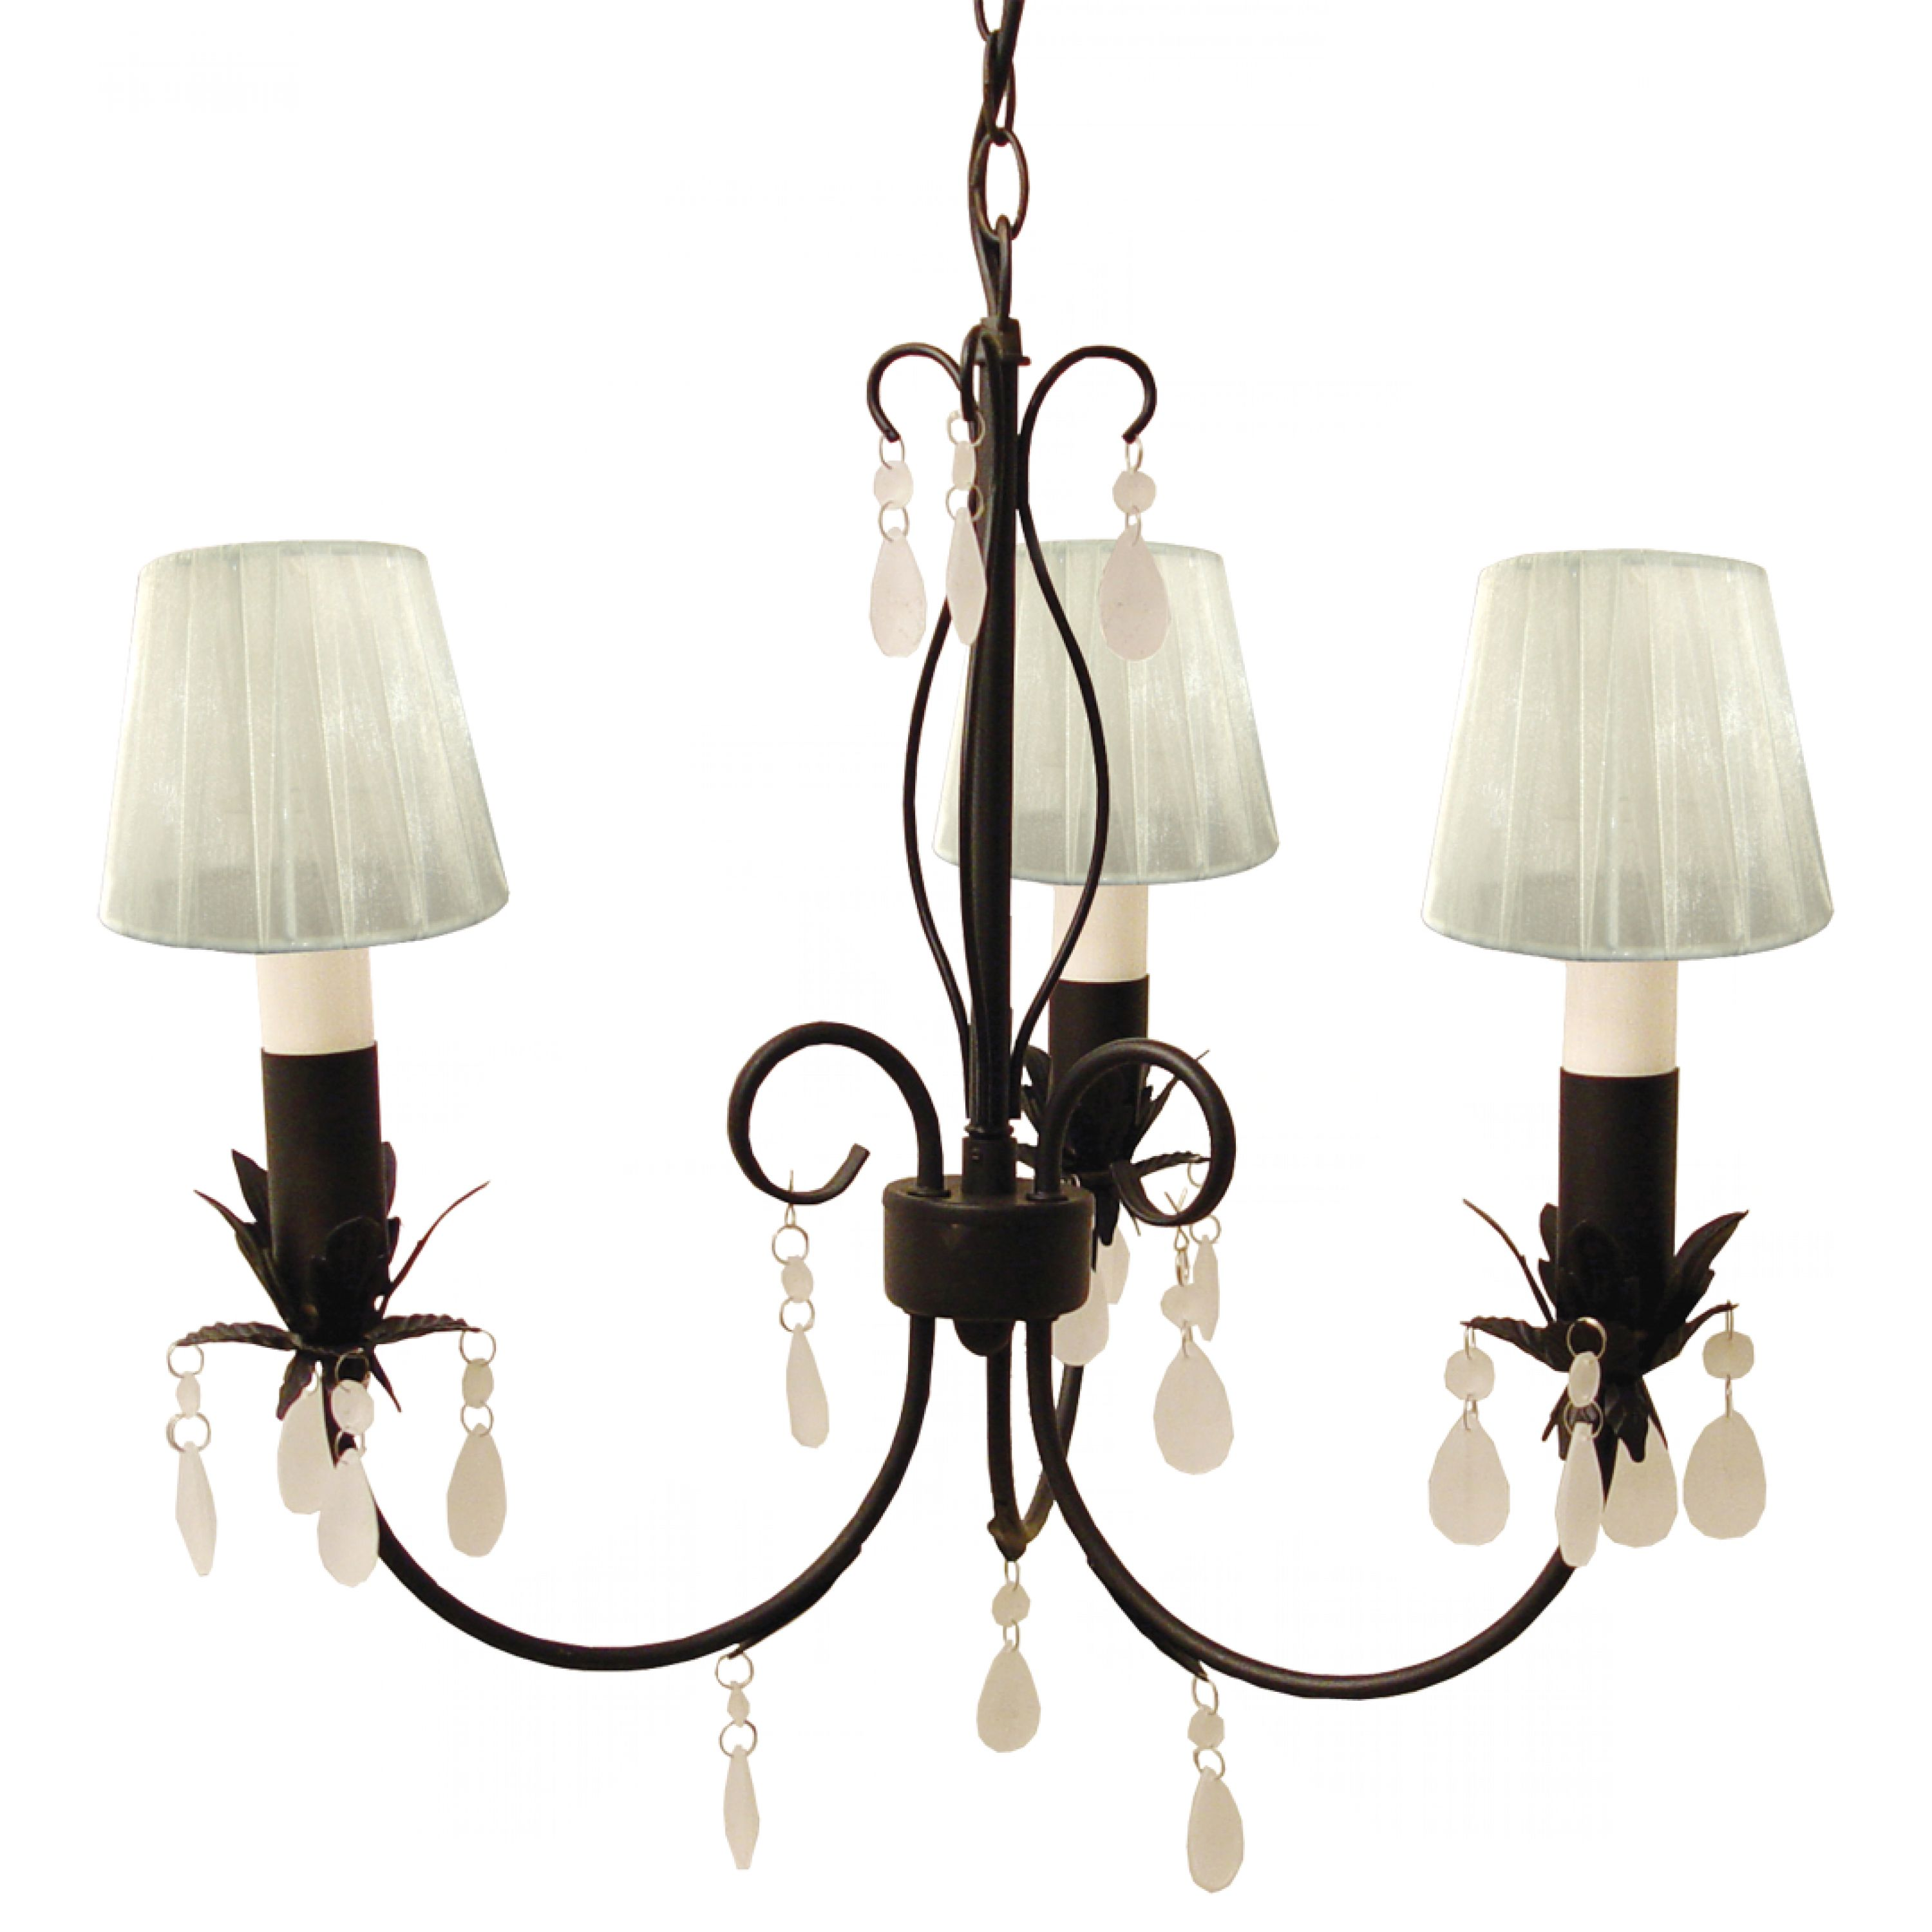 Bistro II 2 Bar Light (antique brass)